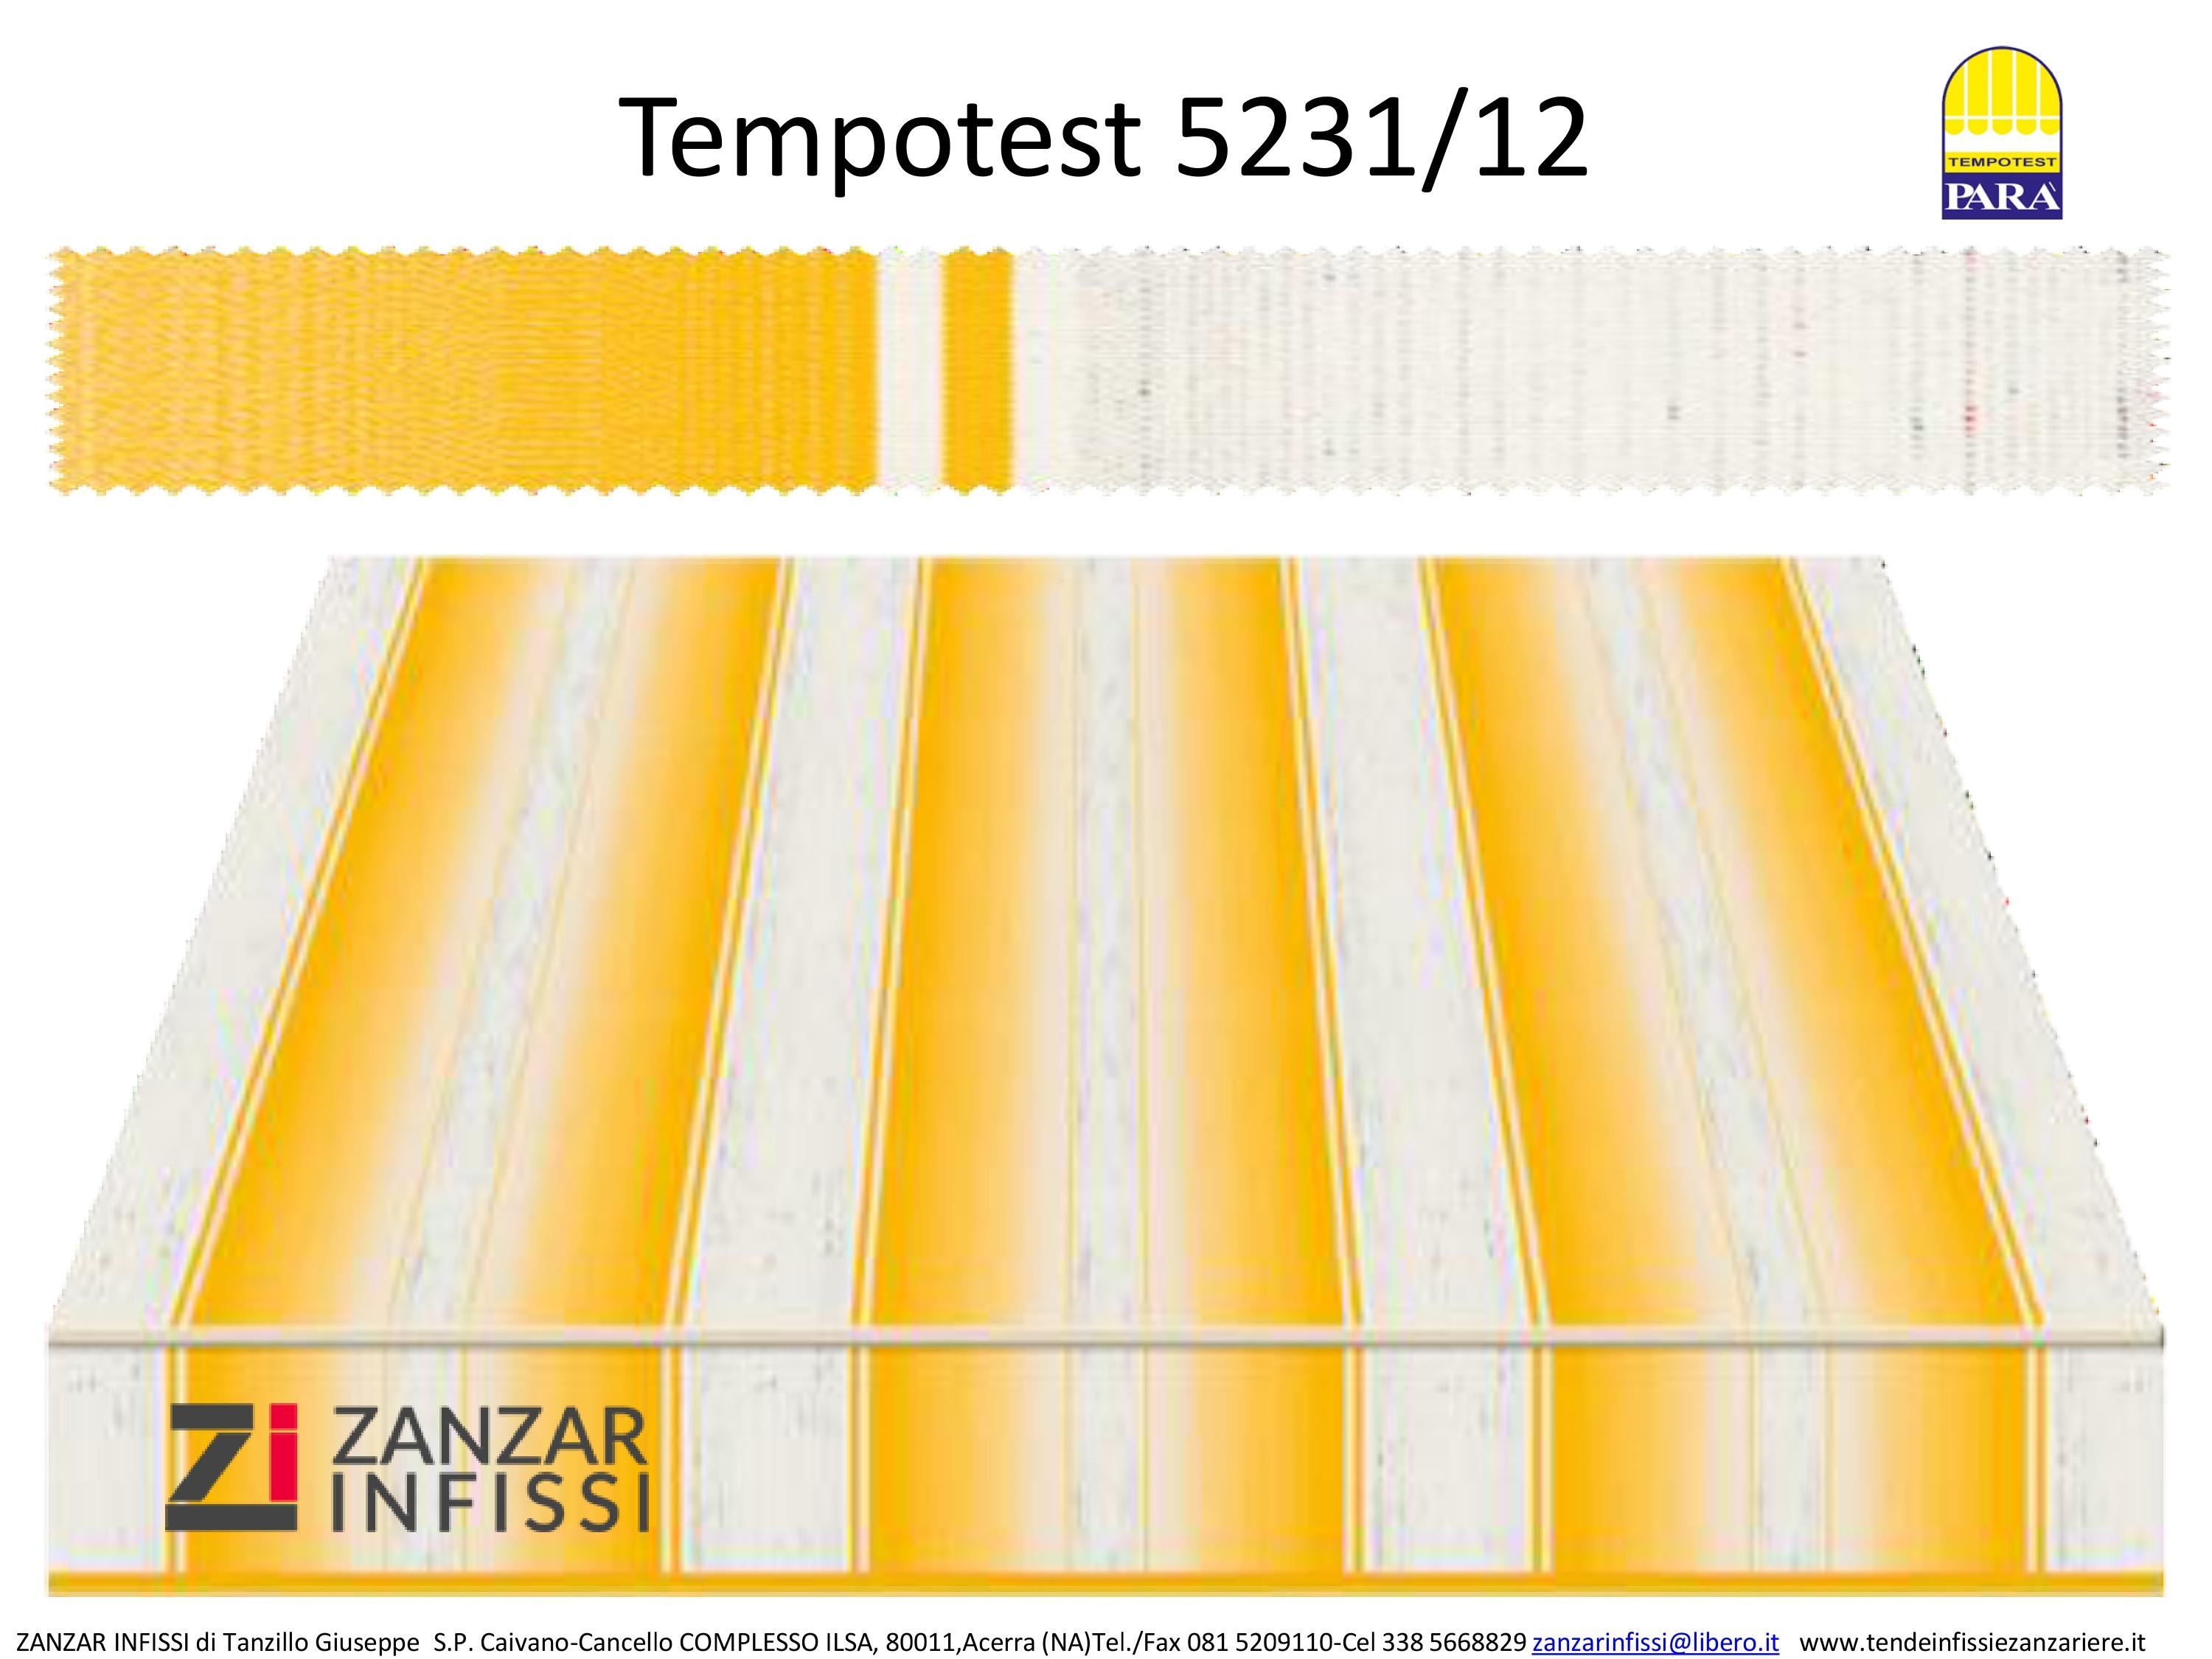 Tempotest 5231/12